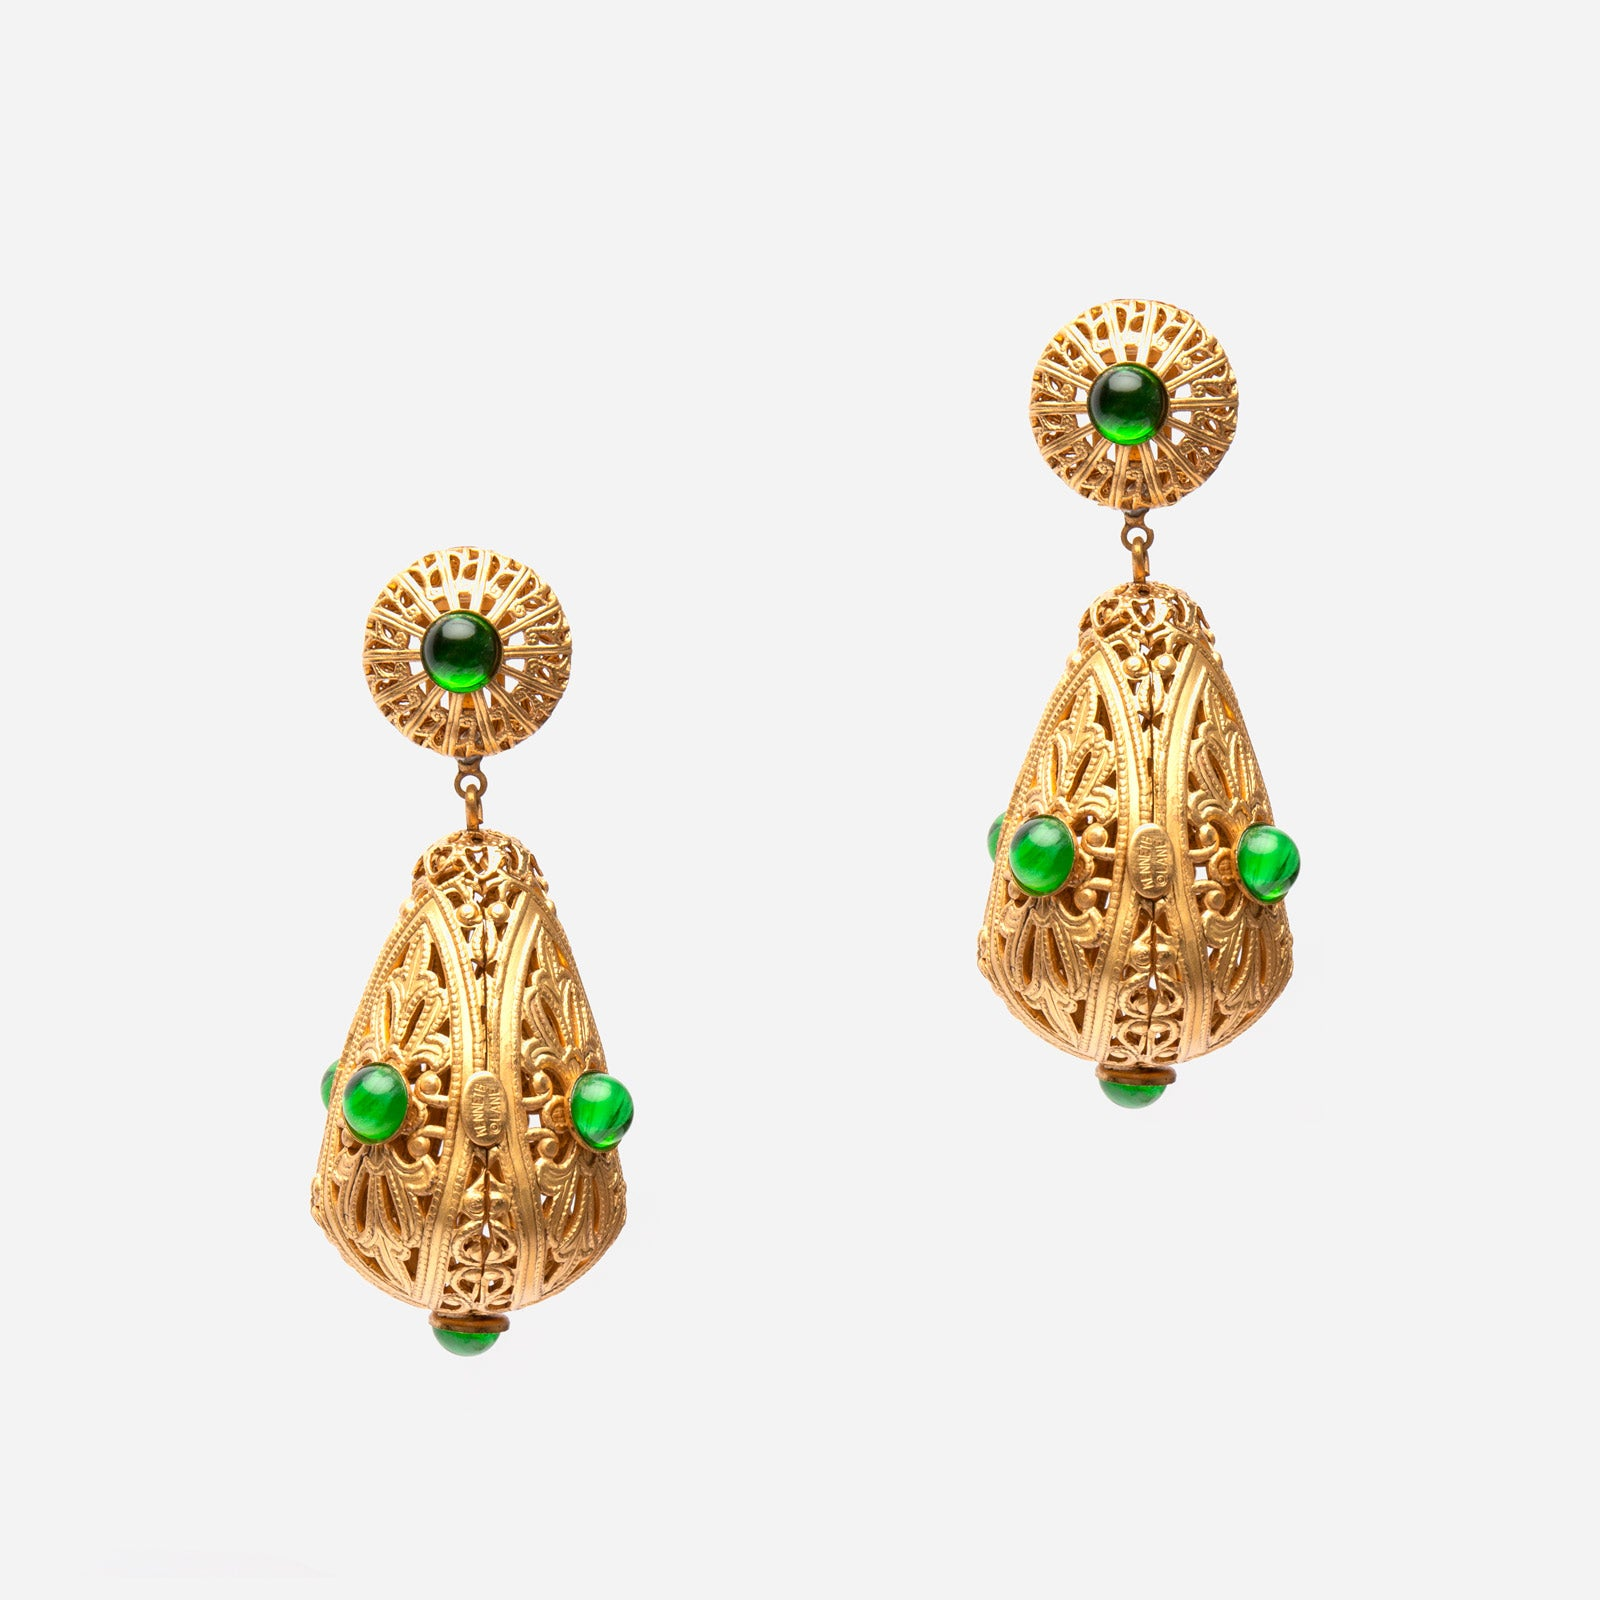 Emerald Dome Filigree Earrings - Frances Valentine